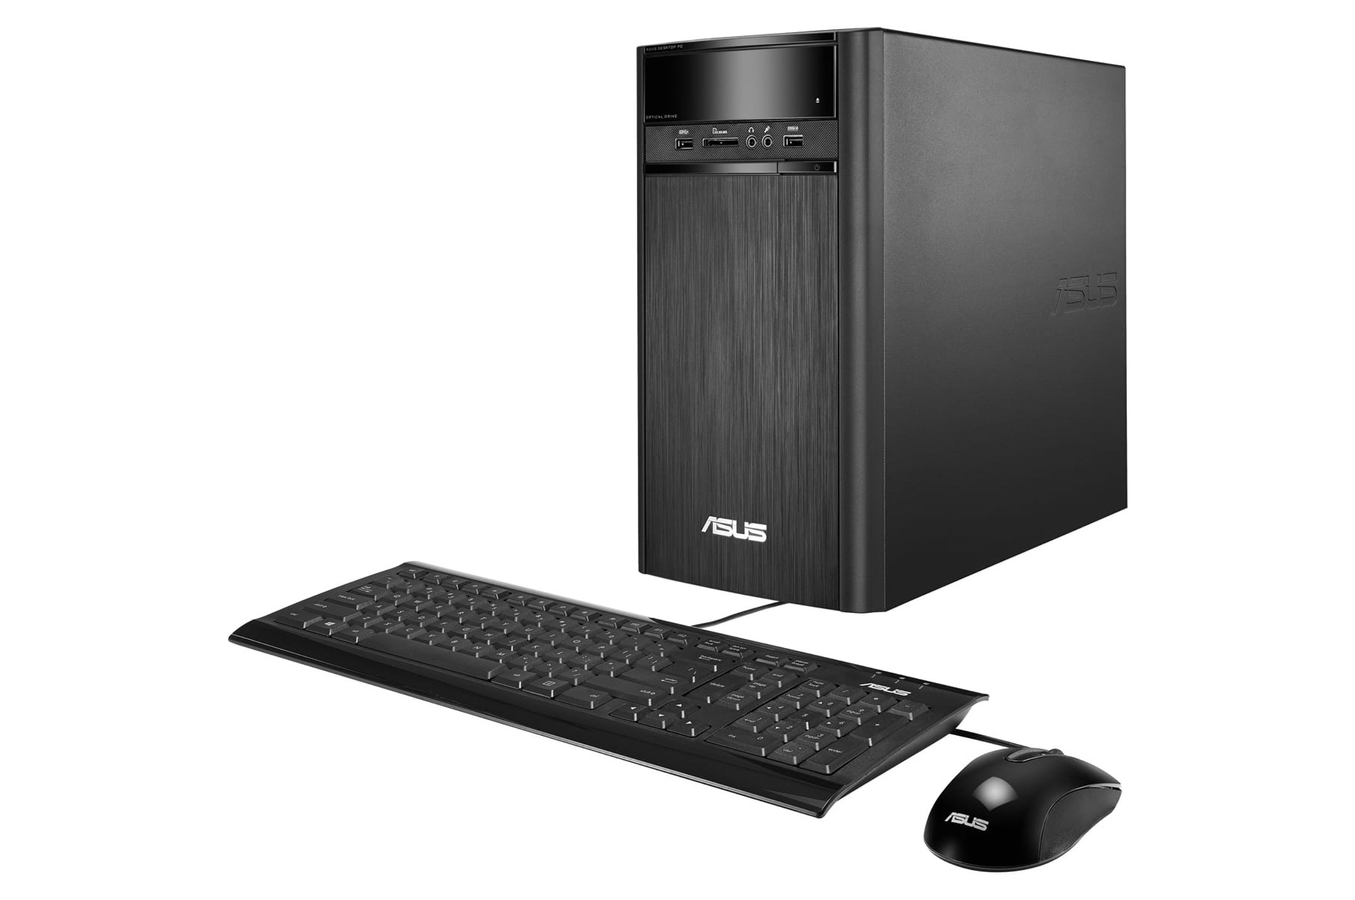 Pc de bureau asus k31cd fr149t 4281497 darty - Ordinateur de bureau darty ...